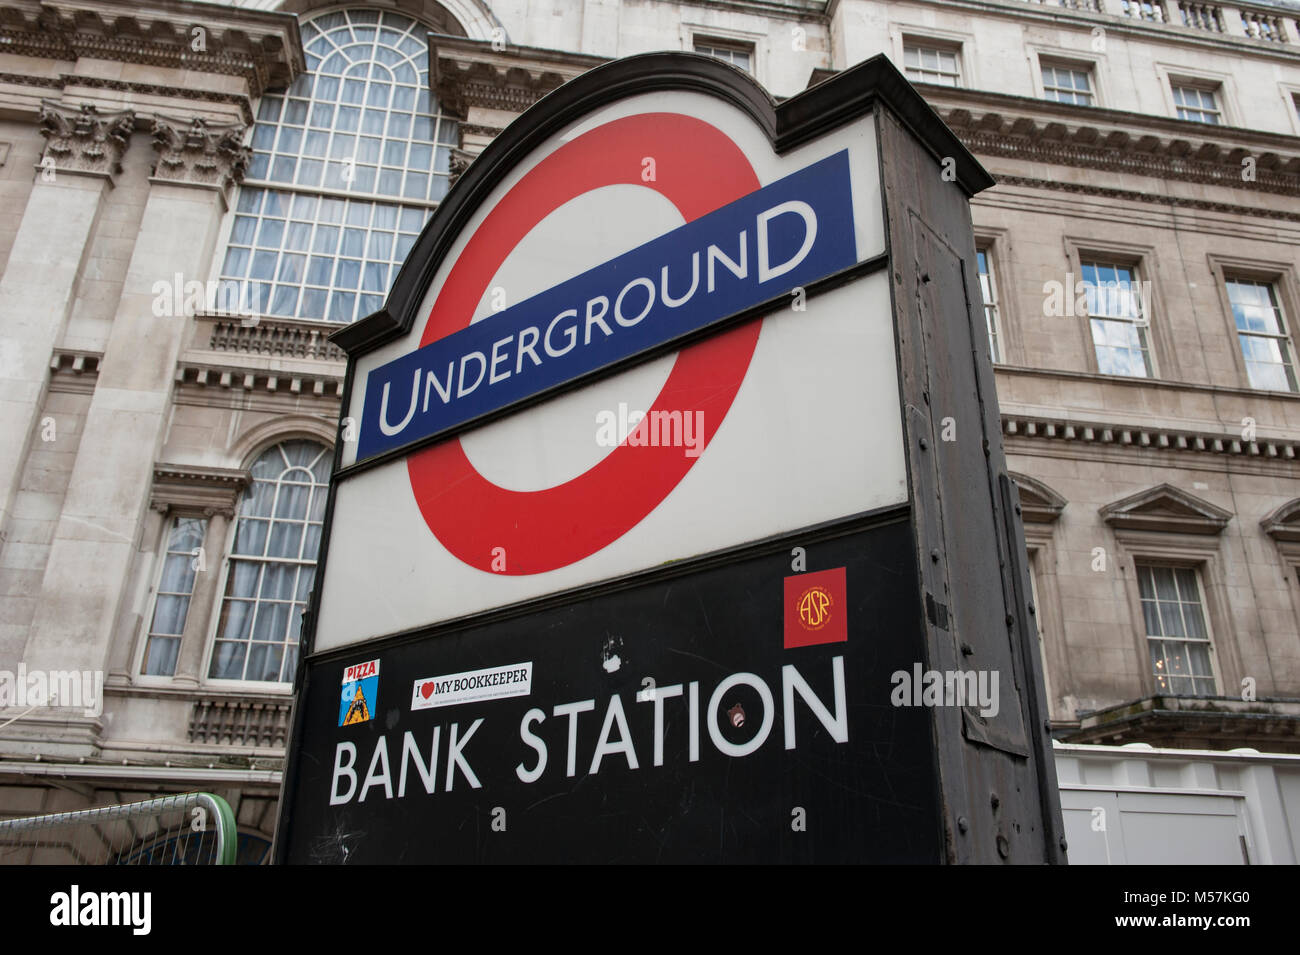 A sign for Bank Station in central London, England - Stock Image